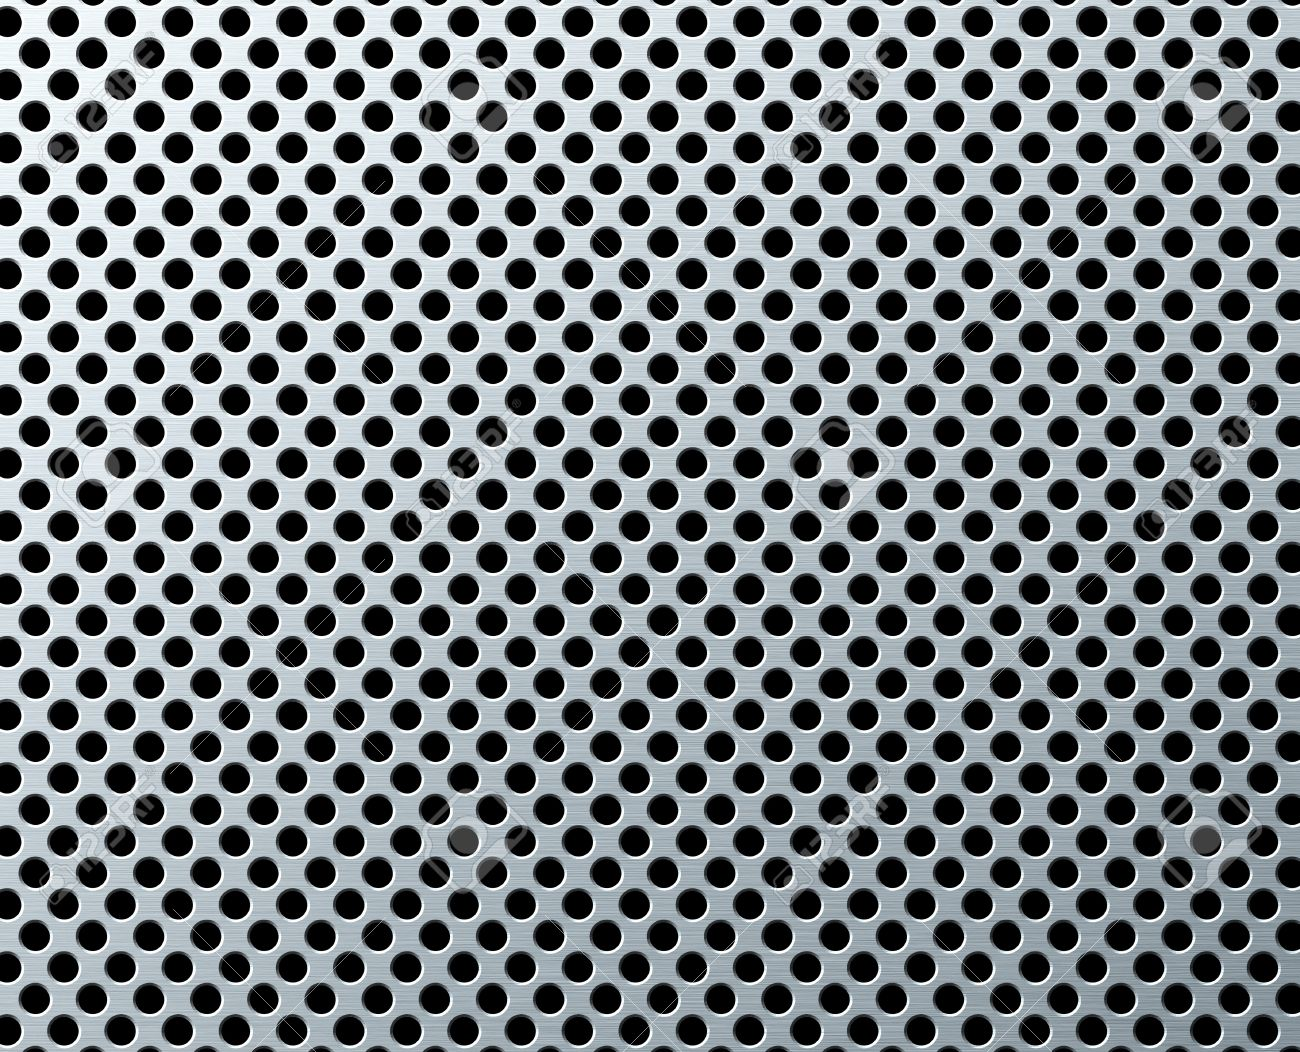 perforated metal background Stock Photo - 15310069